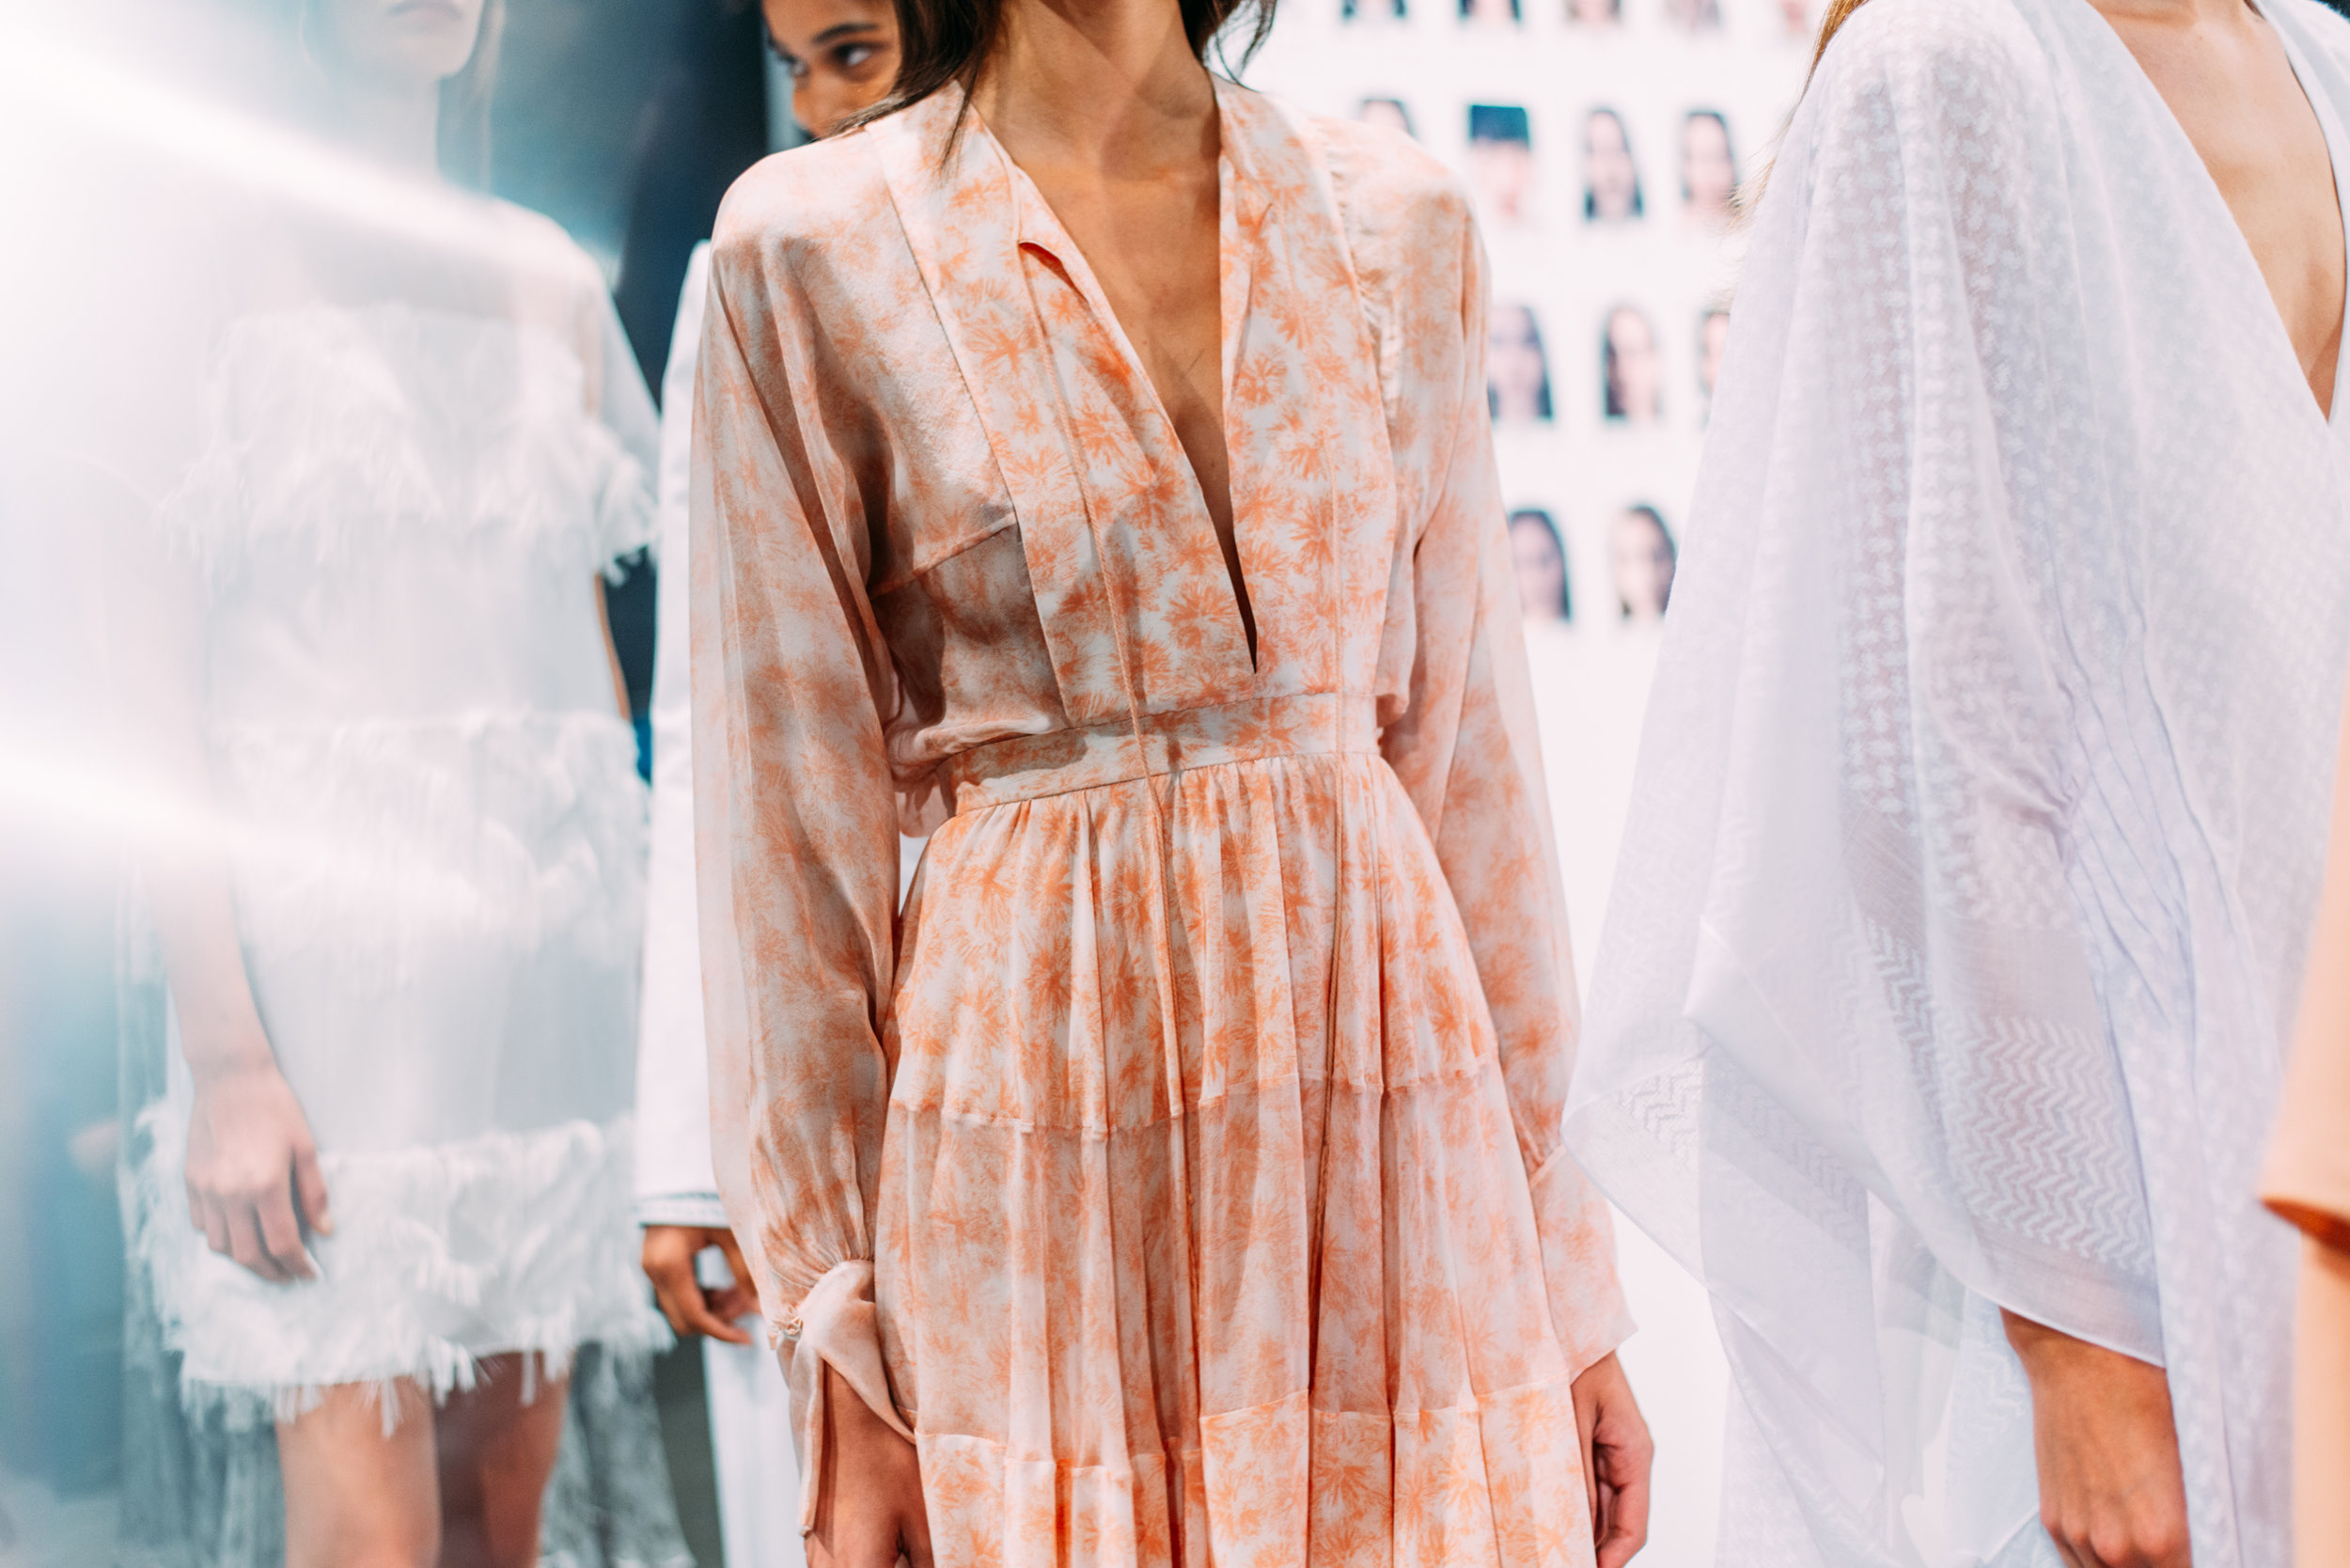 Greenberg_NYFW_NBN_090618-910.jpg